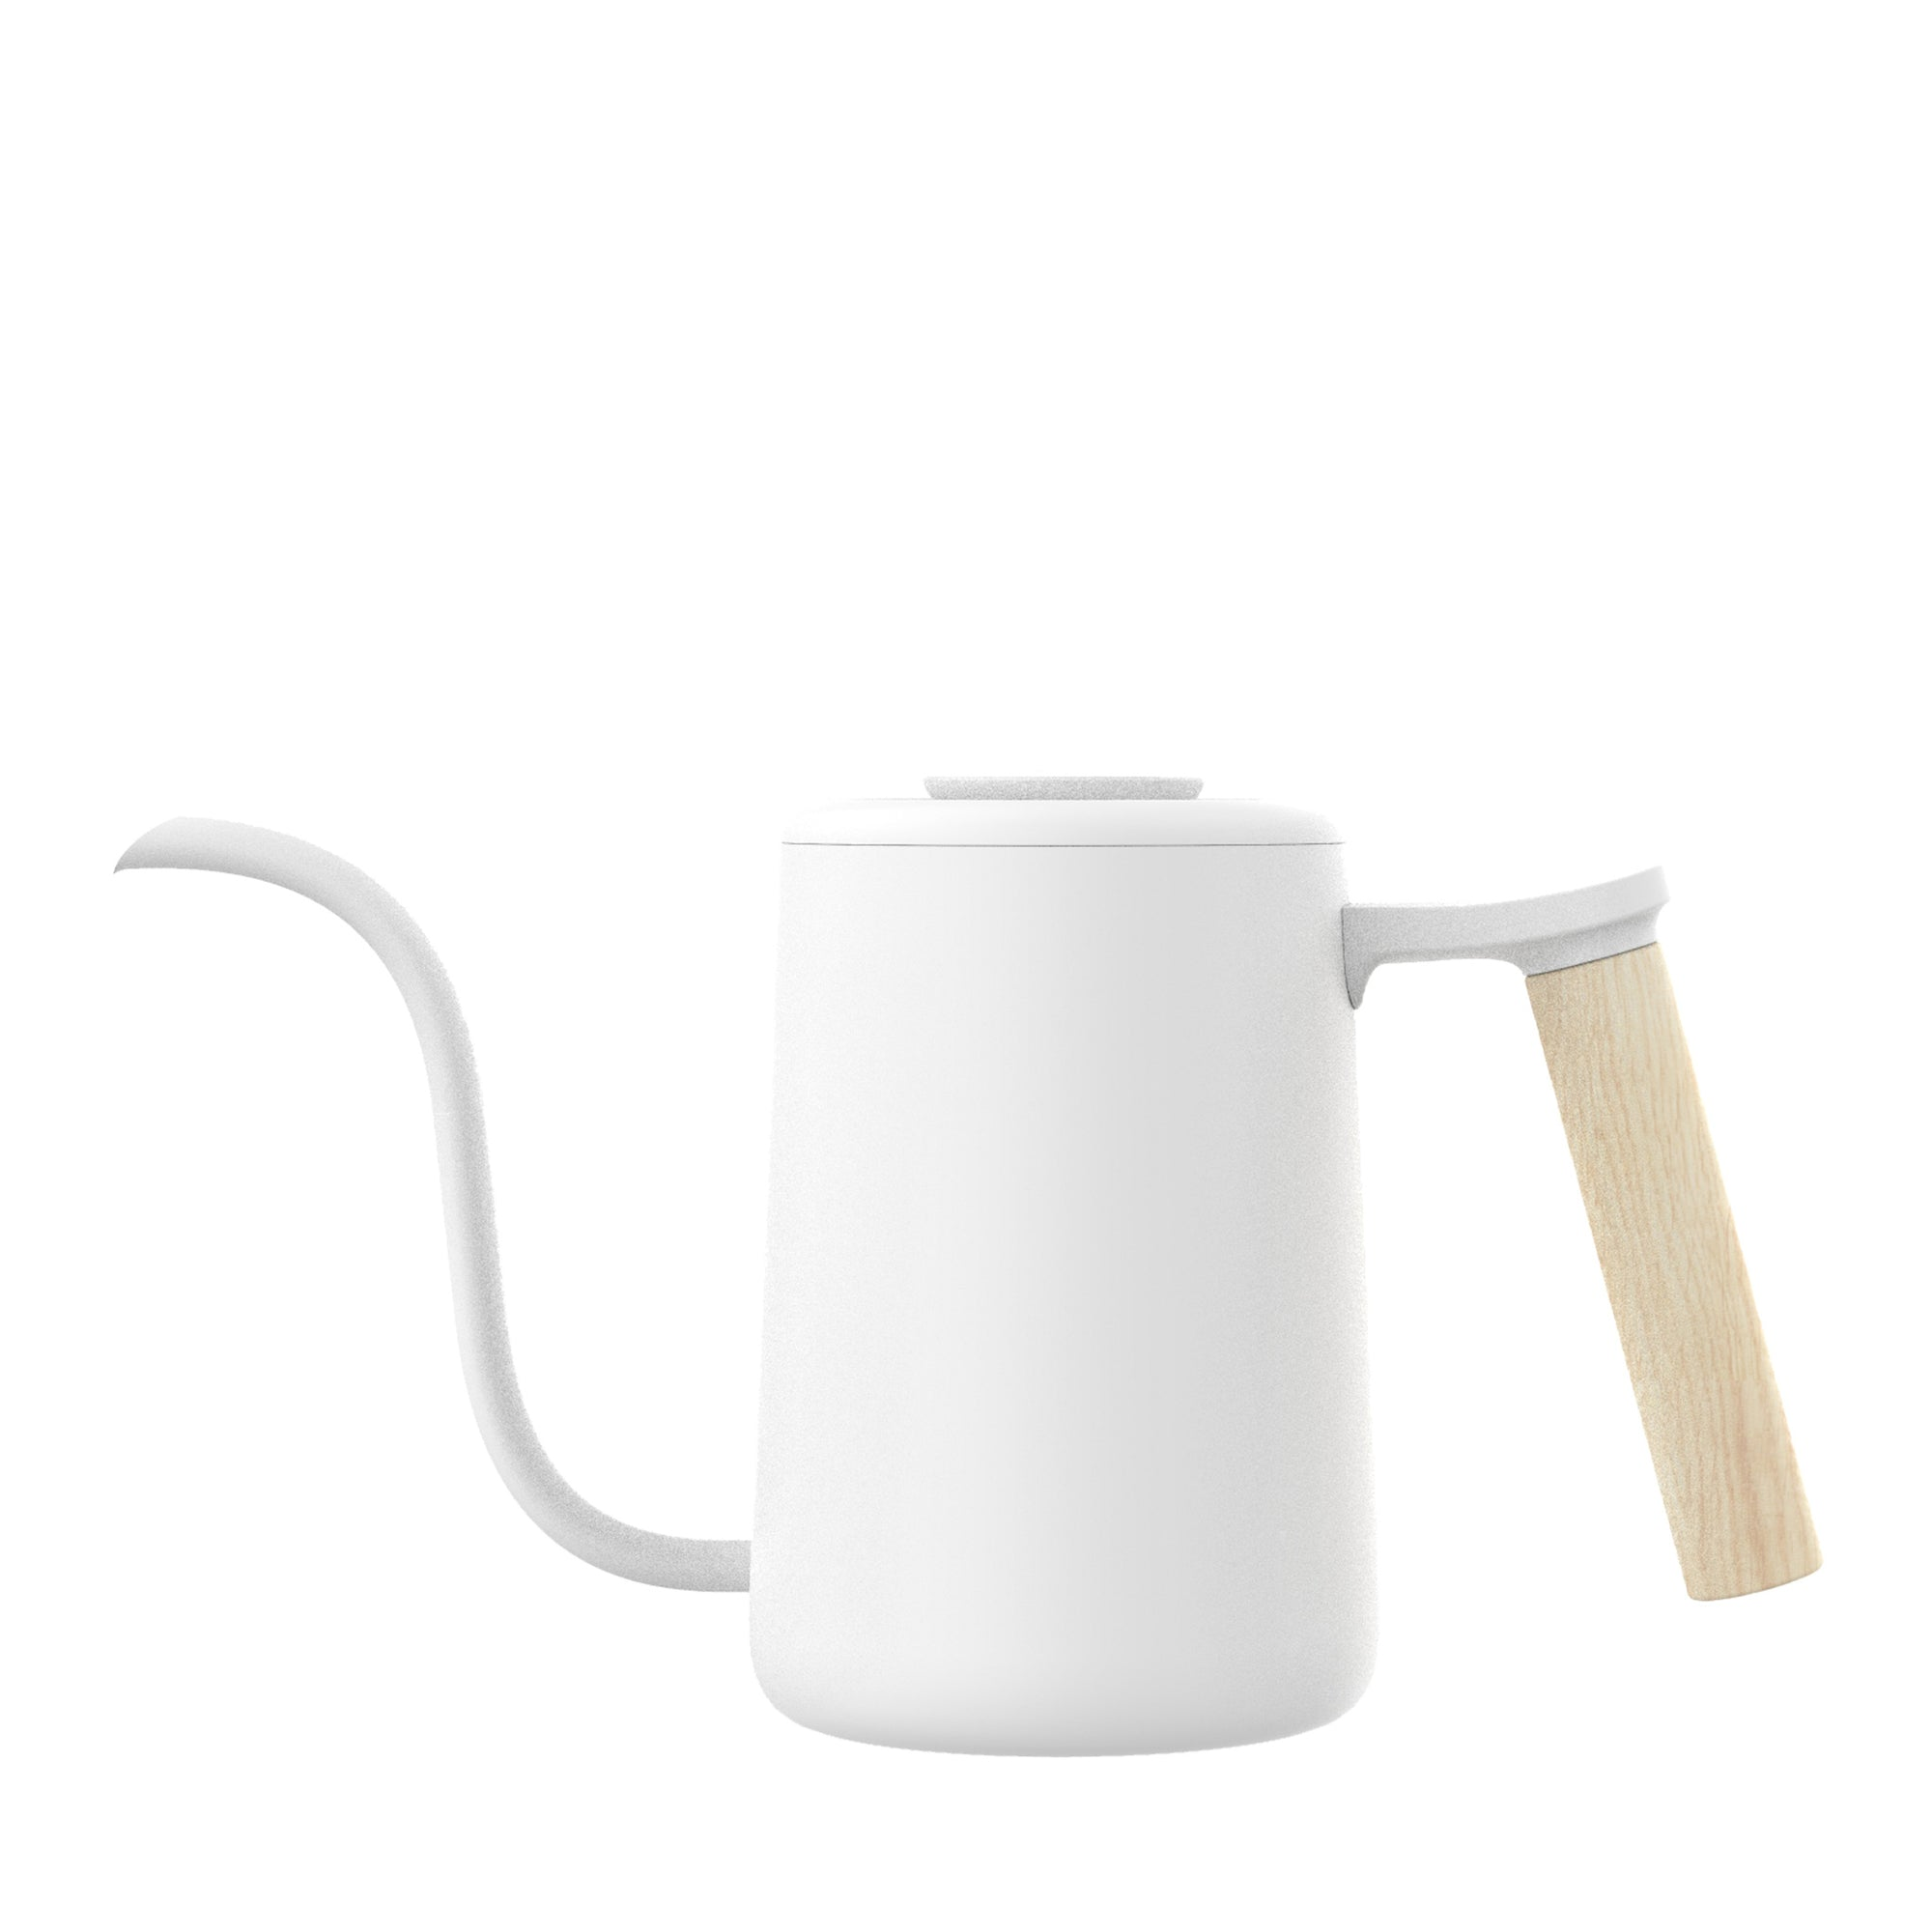 Youth Kettle White 700ml - Timemore - Espresso Gear